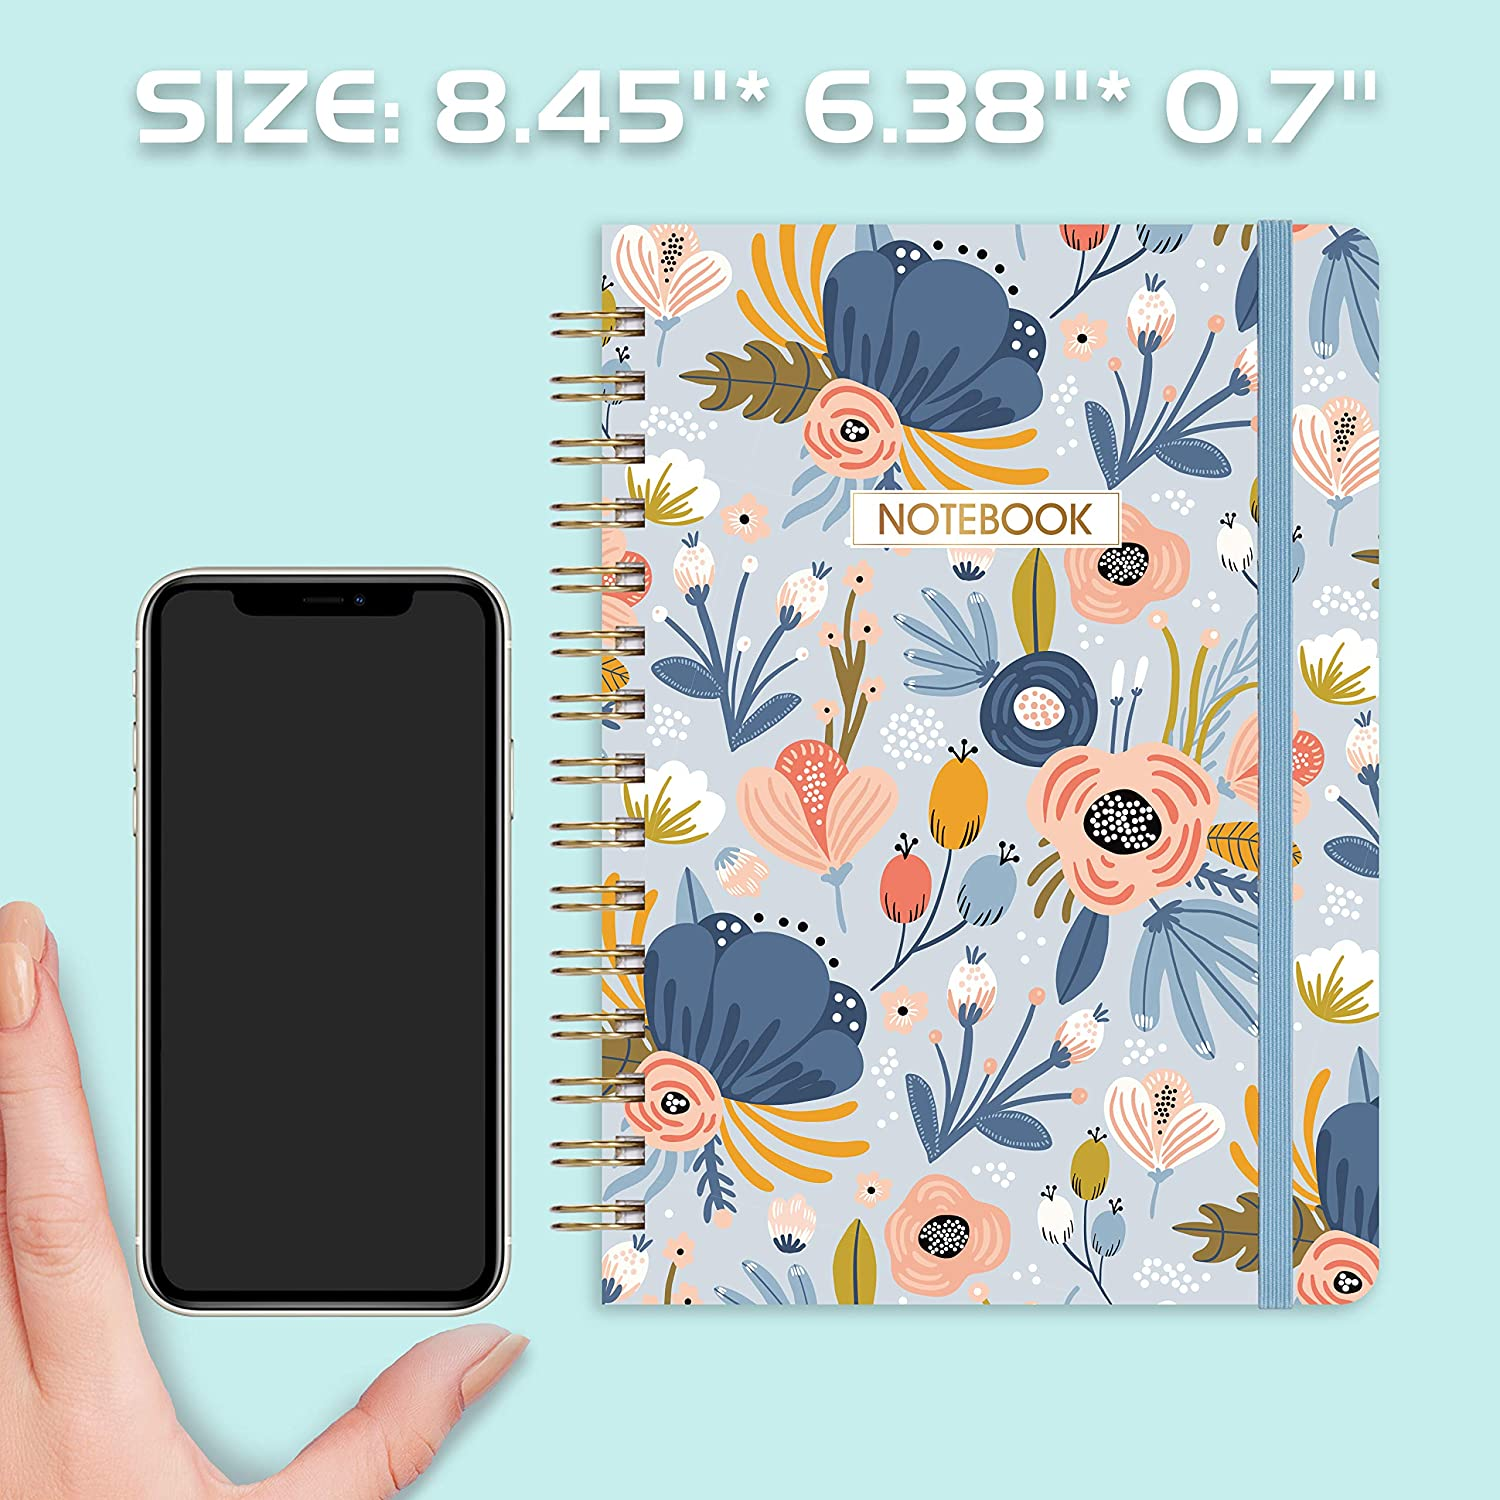 """Ruled Notebook/Journal - Lined Journal with Premium Thick Paper, 8.45"""" X 6.38"""", College Ruled Spiral Notebook/Journal, Banded with Exquisite Inner Pocket, Hardcover : Office Products"""